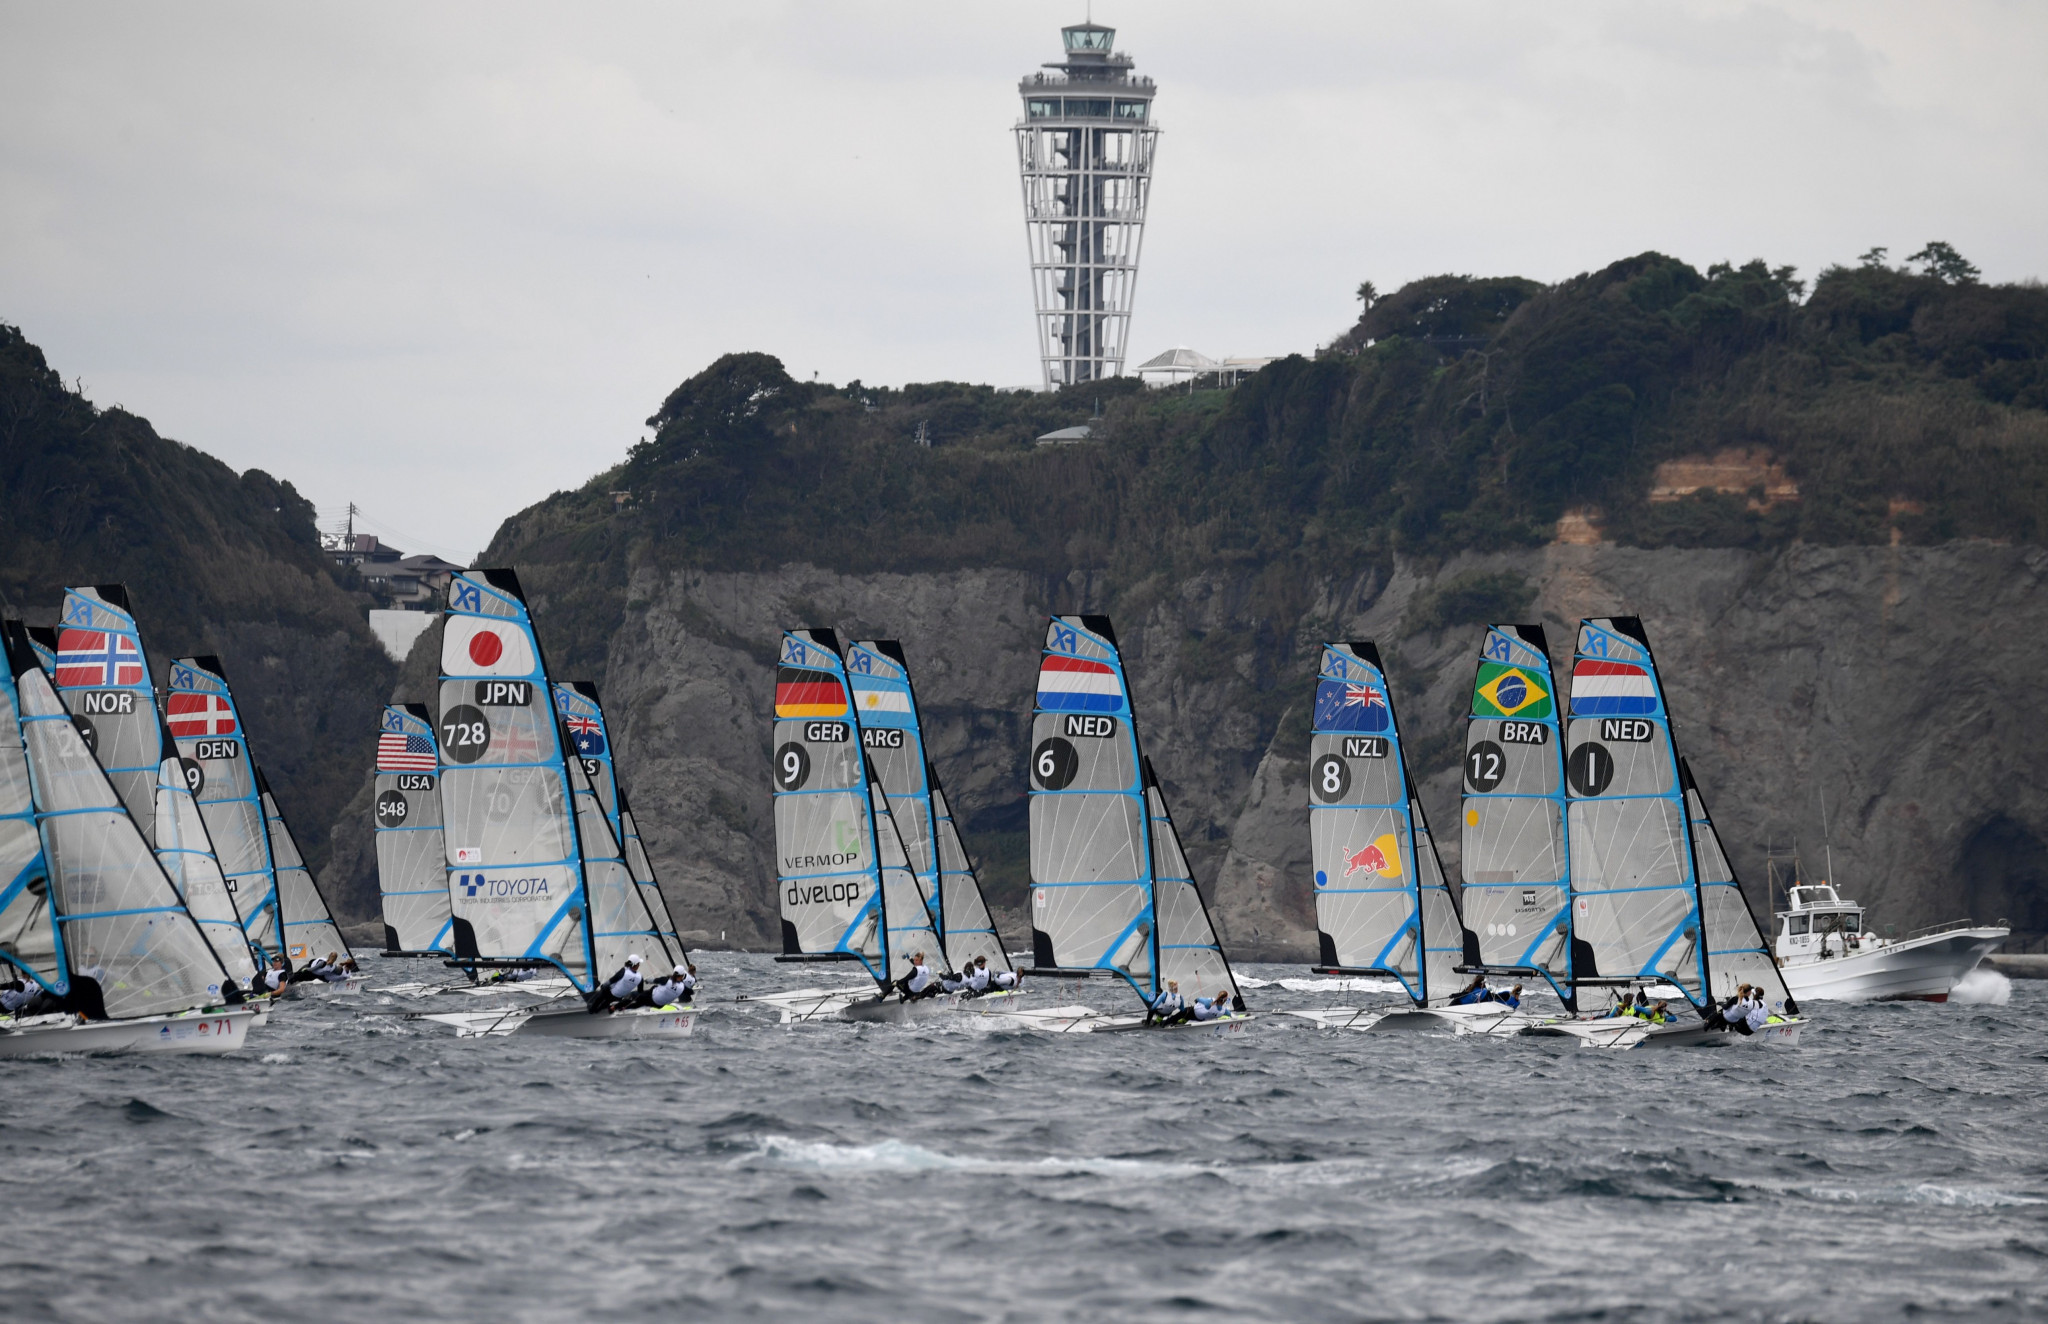 World Sailing chief executive Andy Hunt expressed concerns over provisions for athletes ©Getty Images